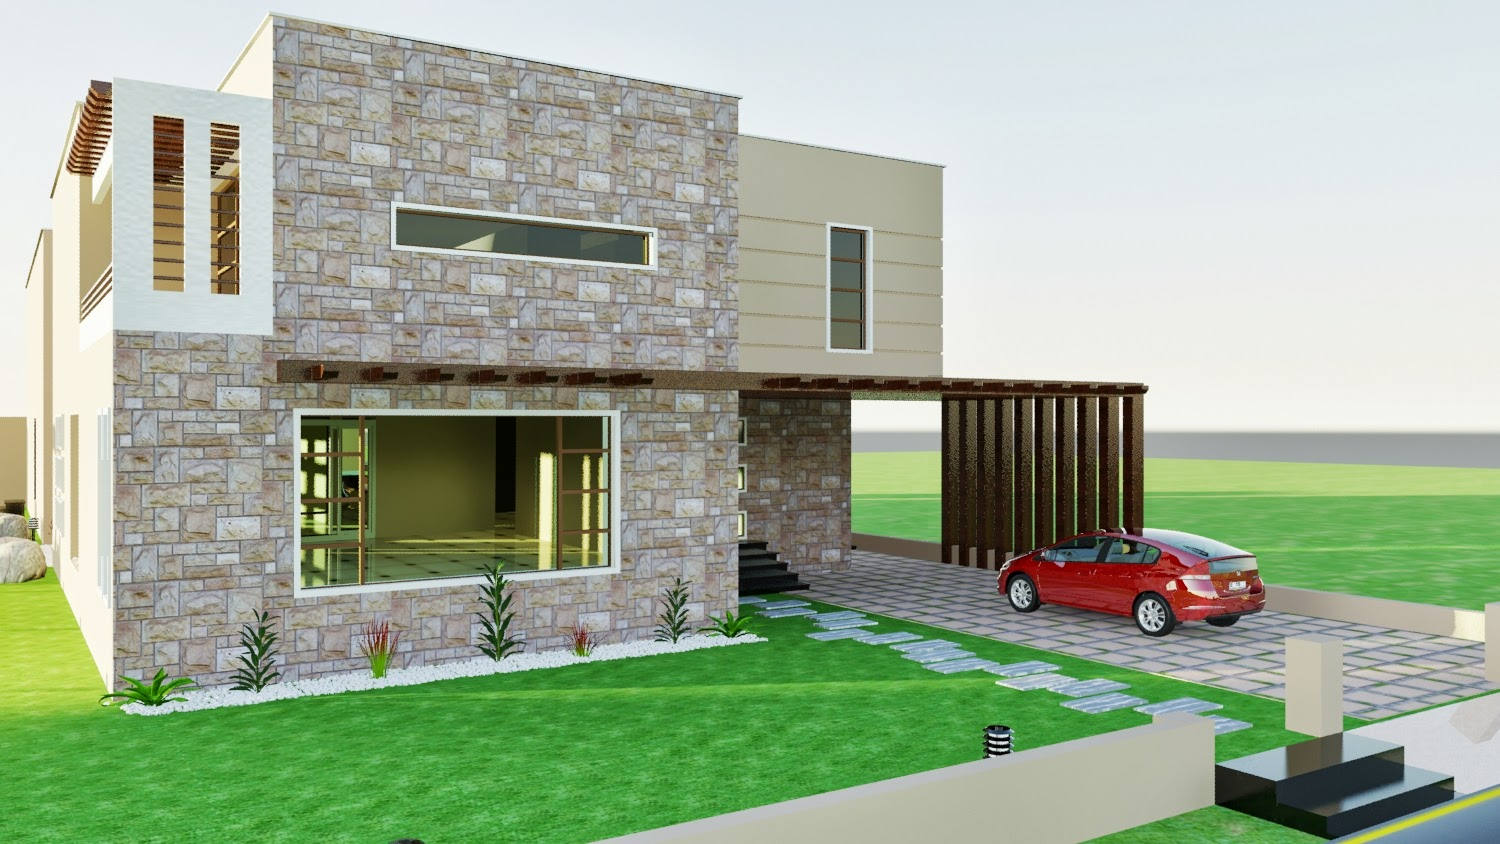 3d front dha karachi vii 3d front elevation - Swimming pool in bahria town lahore ...